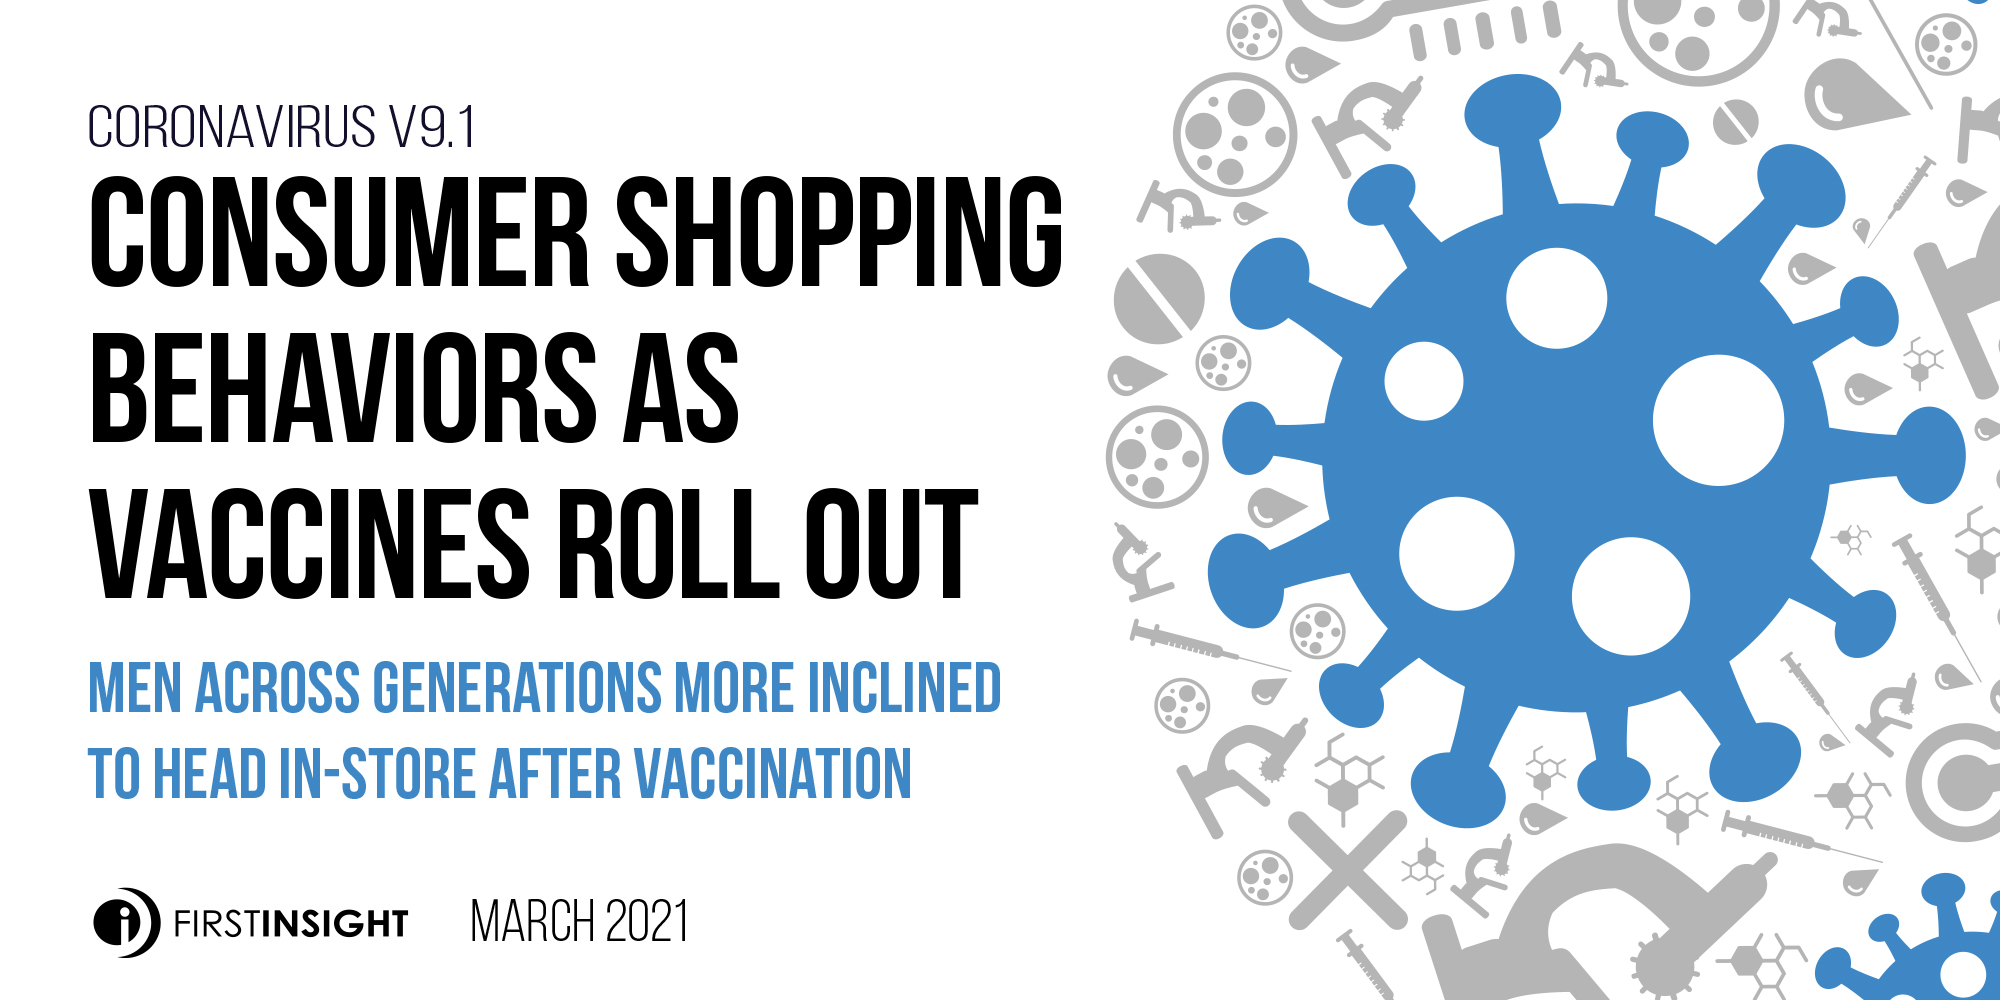 Men Across Generations More Inclined To Head In-Store After Vaccination